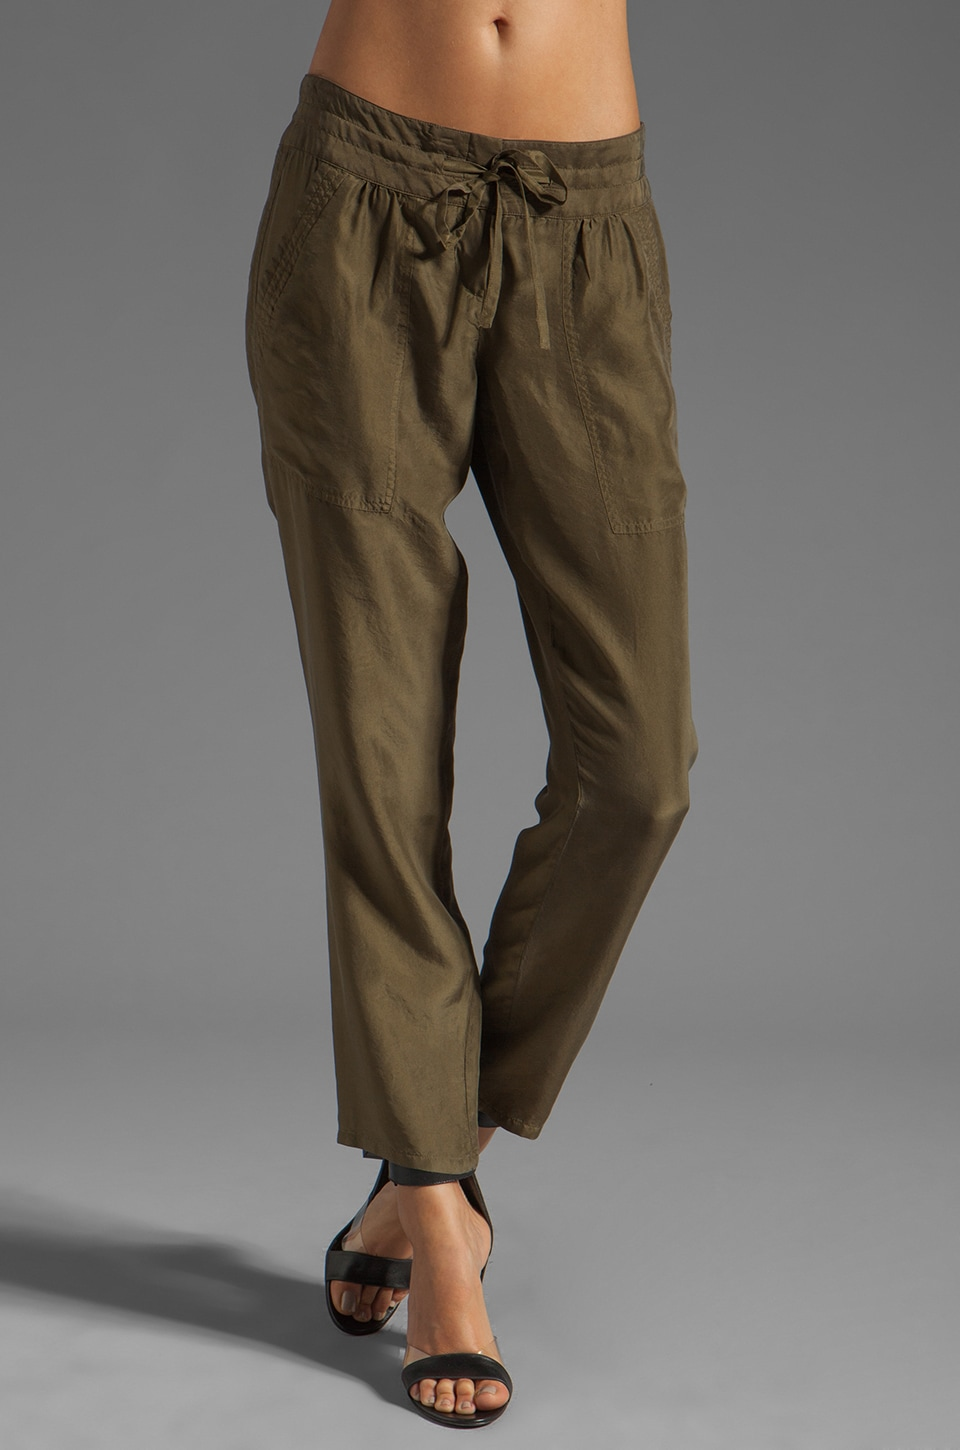 Theory Dunes Sidonia T Silk Habotai Pants in Cactus